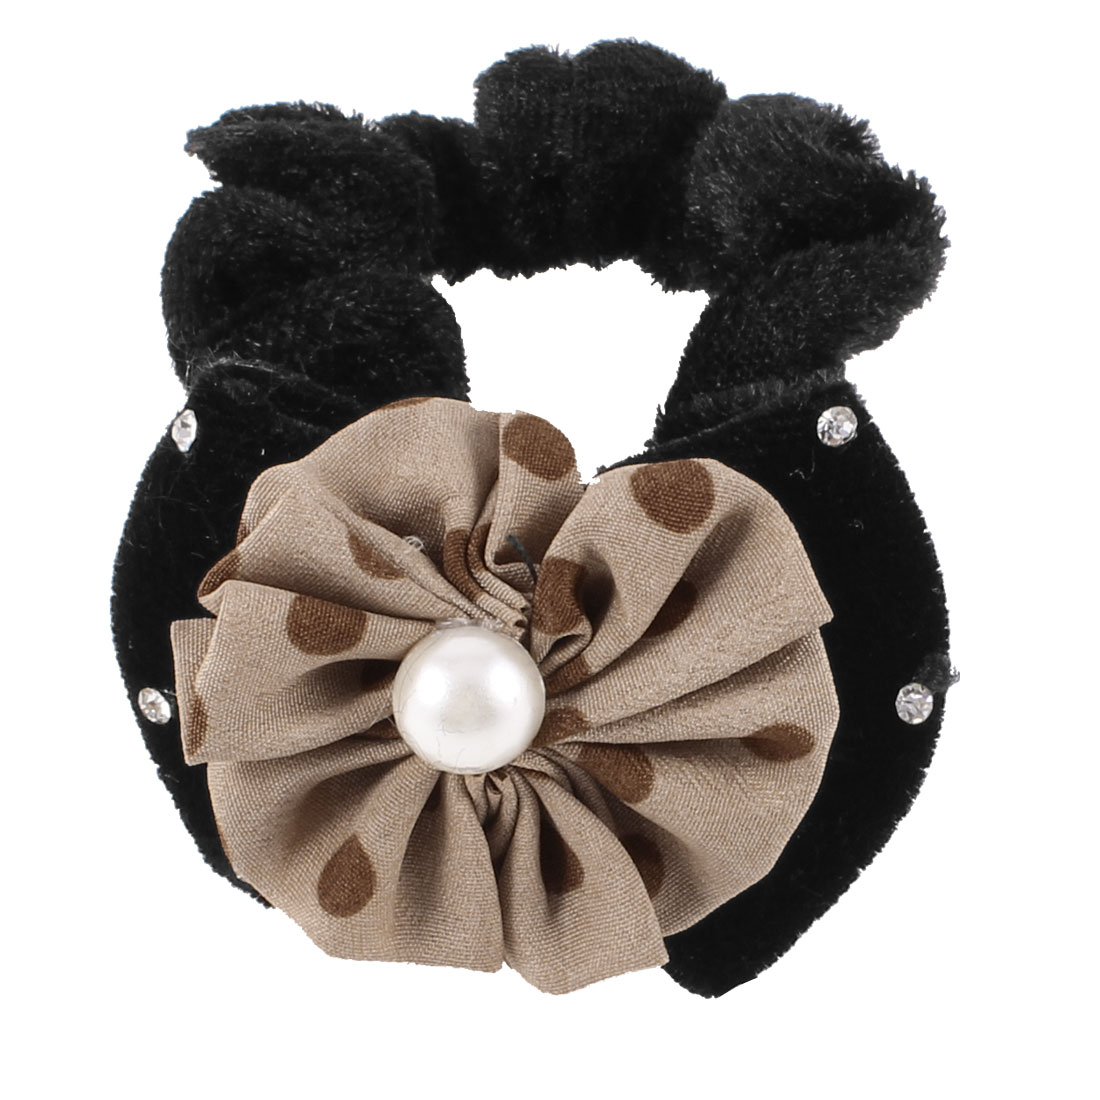 Ladies White Faux Pearl Bow Decora Stretchy Velvet Hair Tie Scrunchy Holder Black